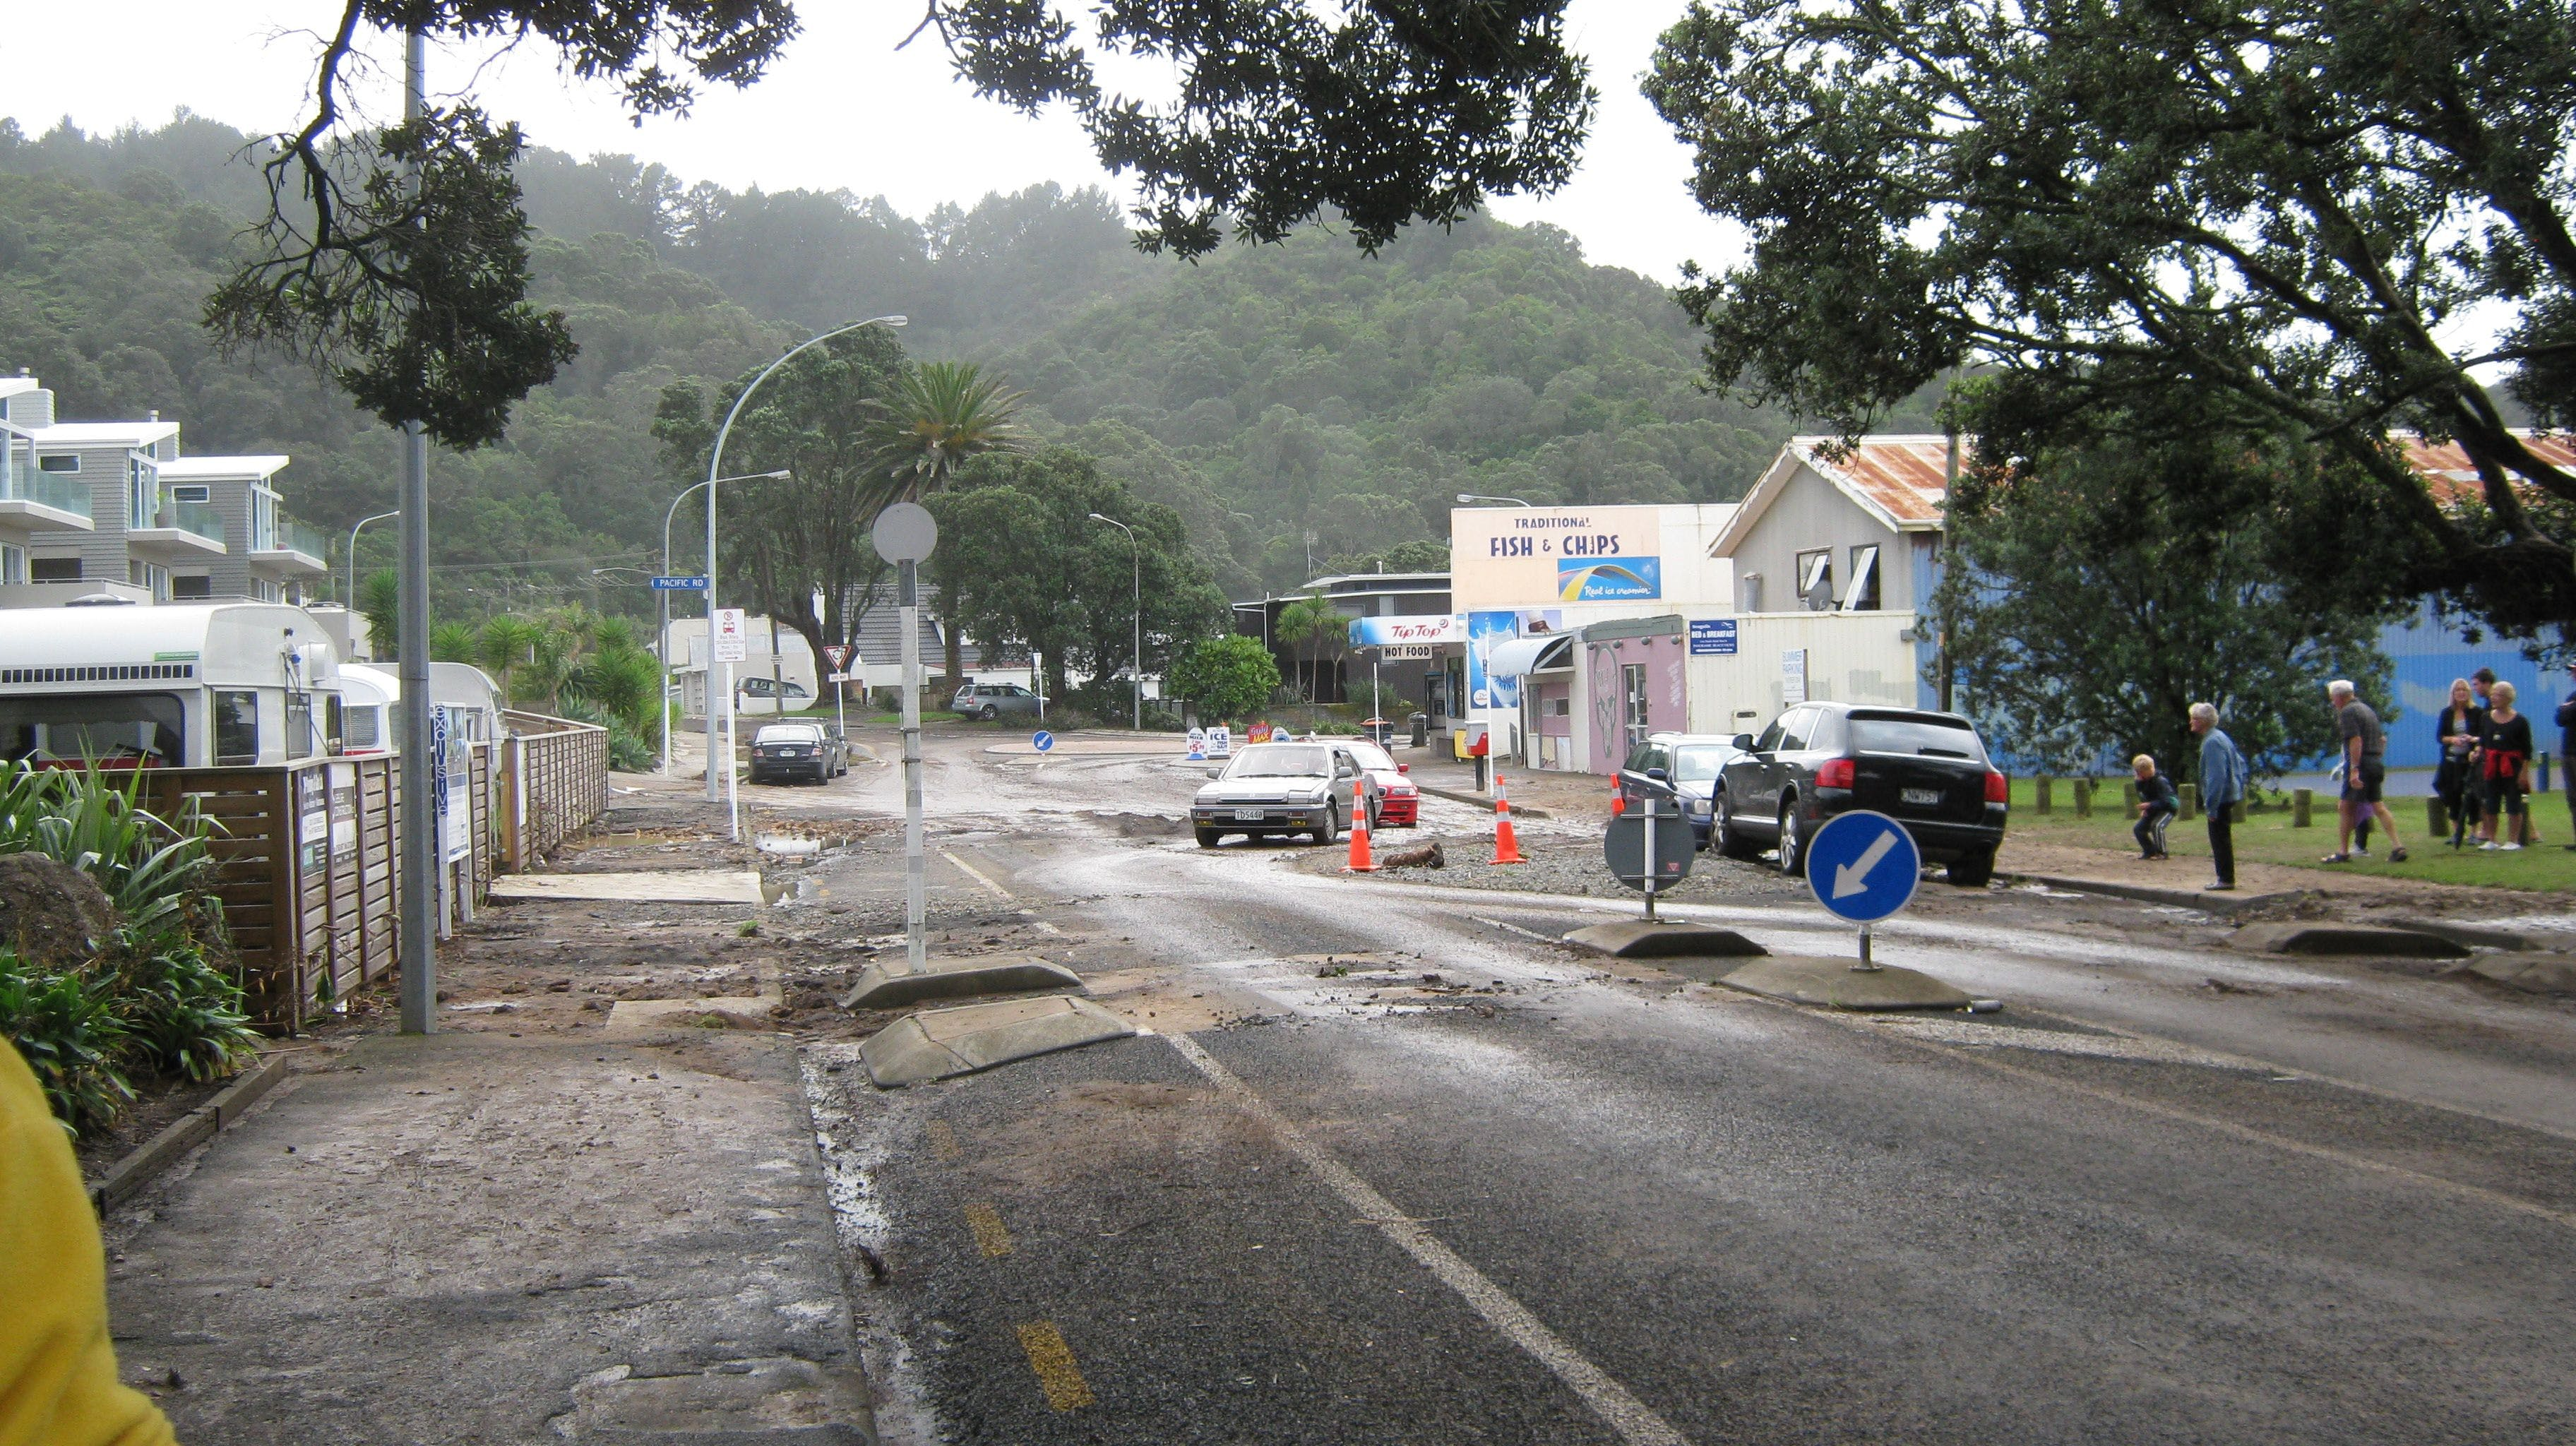 Flooding In The Street